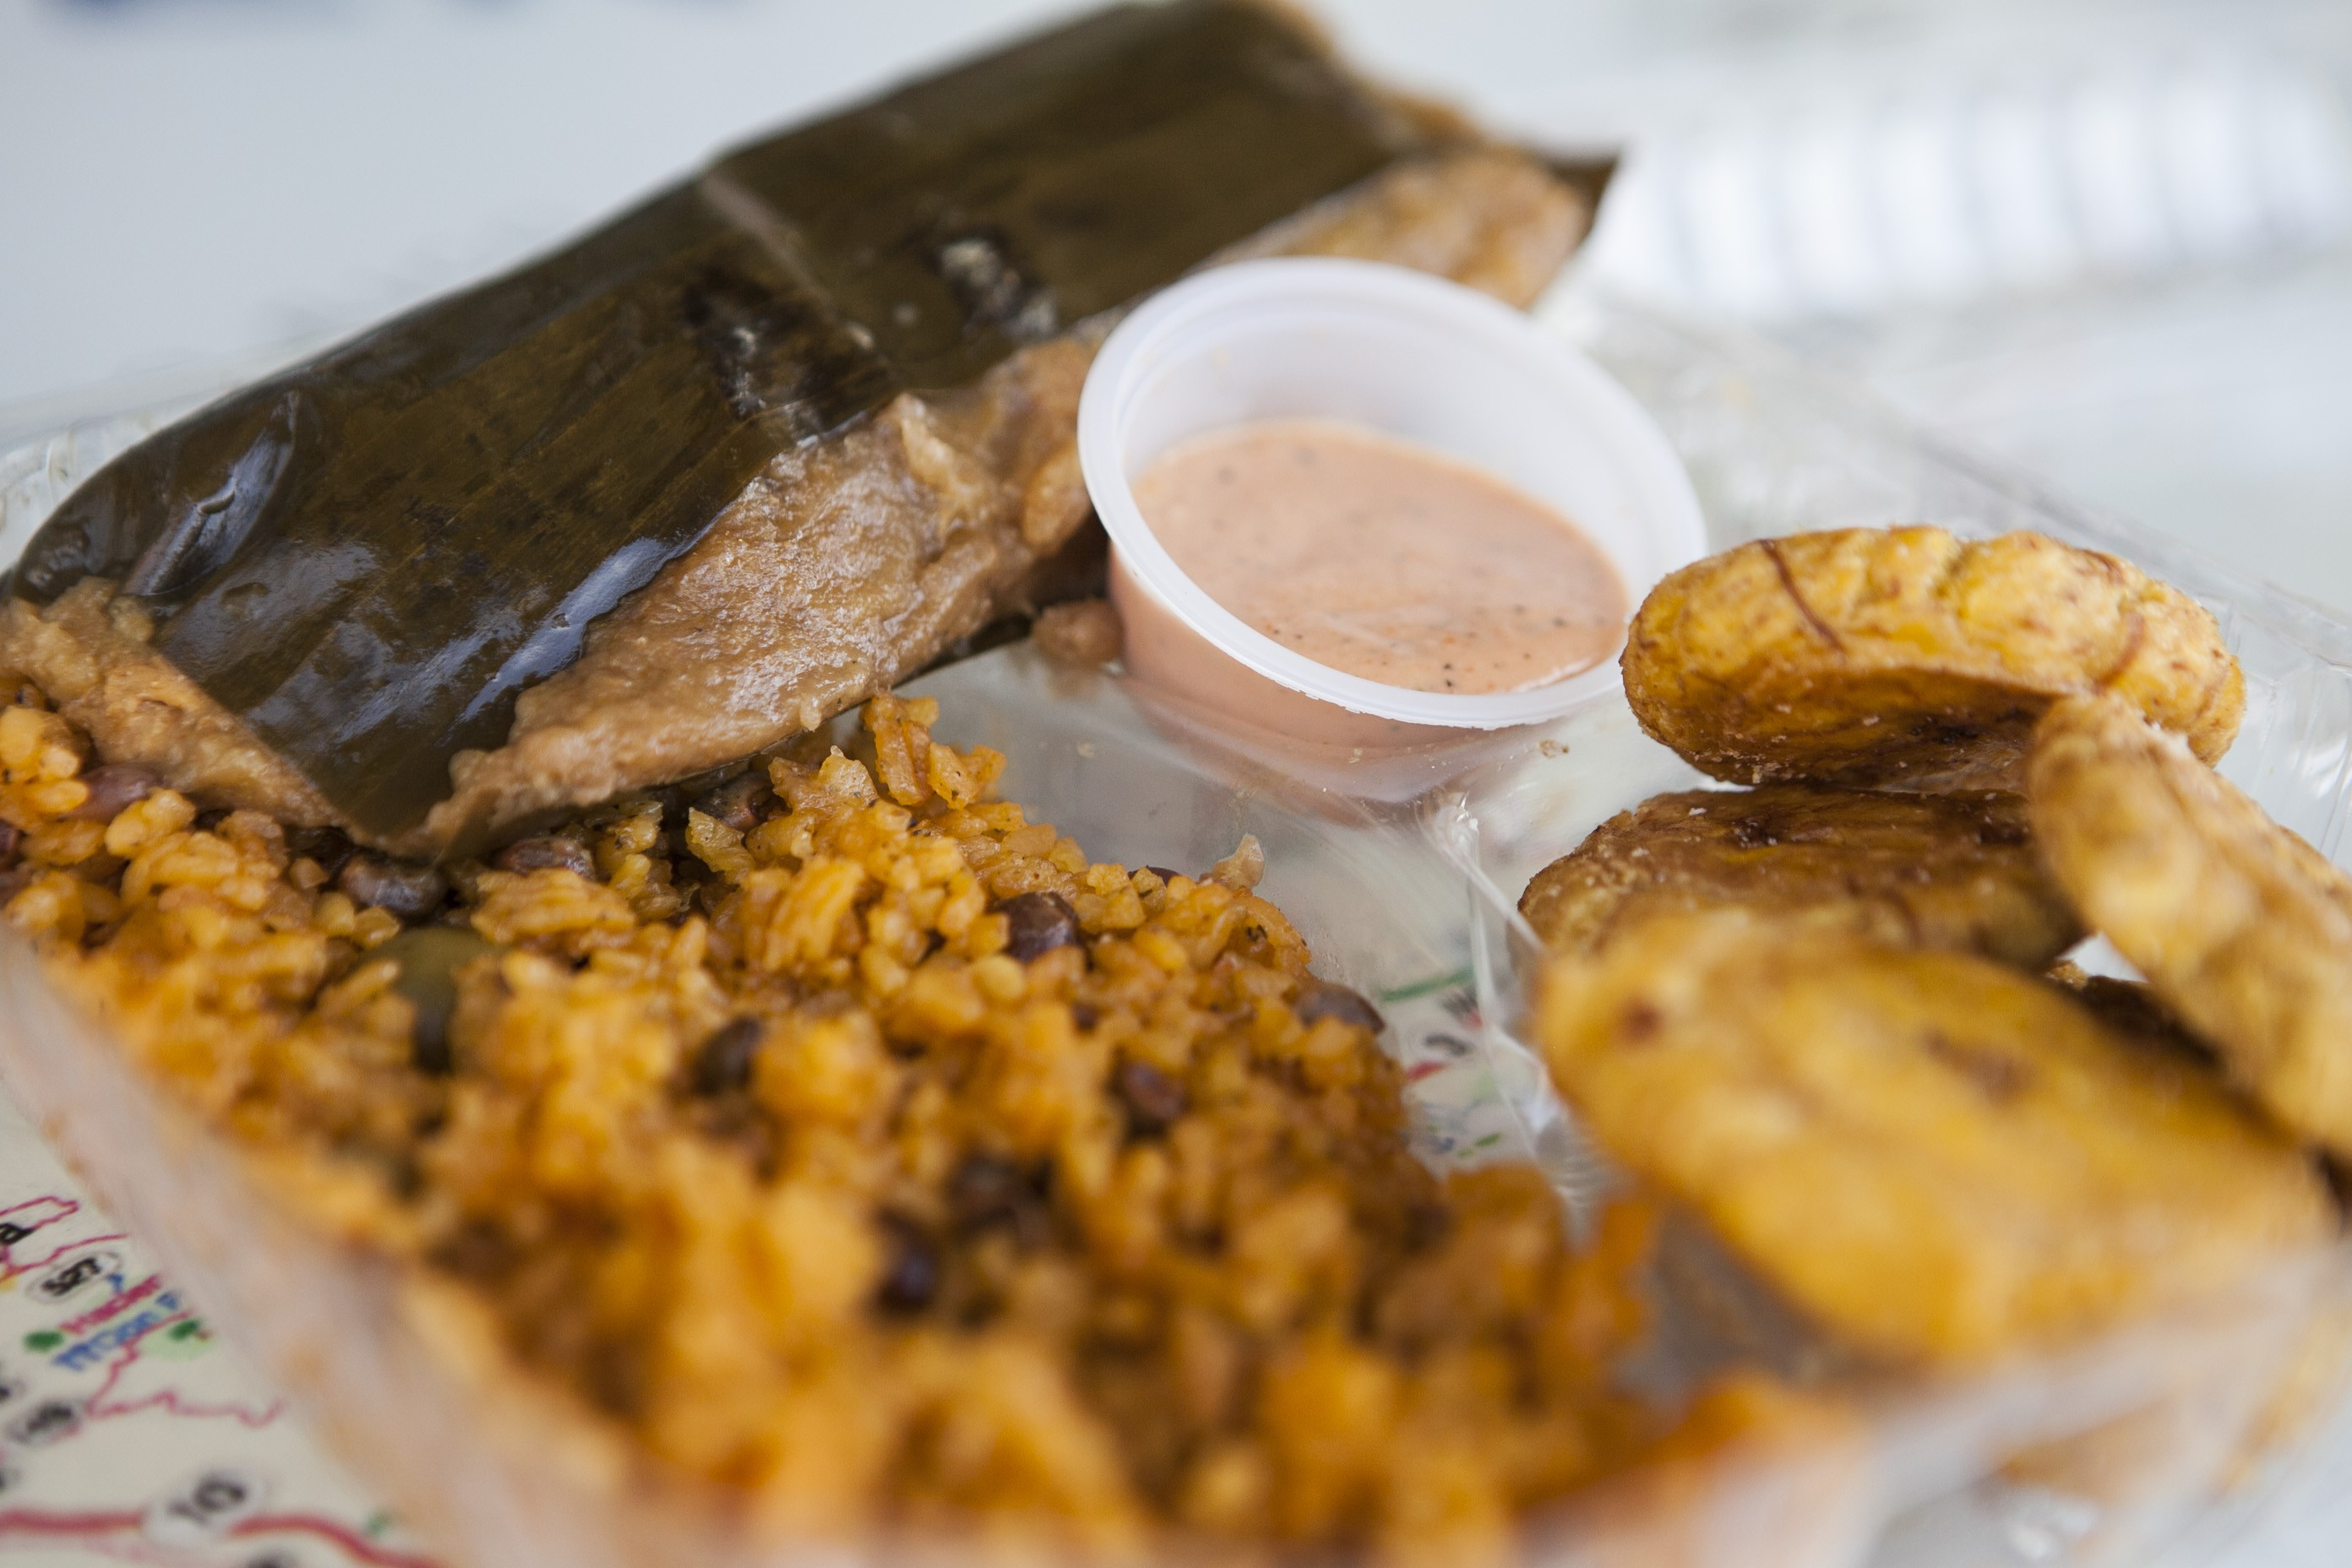 Borinquen Soul Dishes Out Puerto Rican Grandma Food Inside An